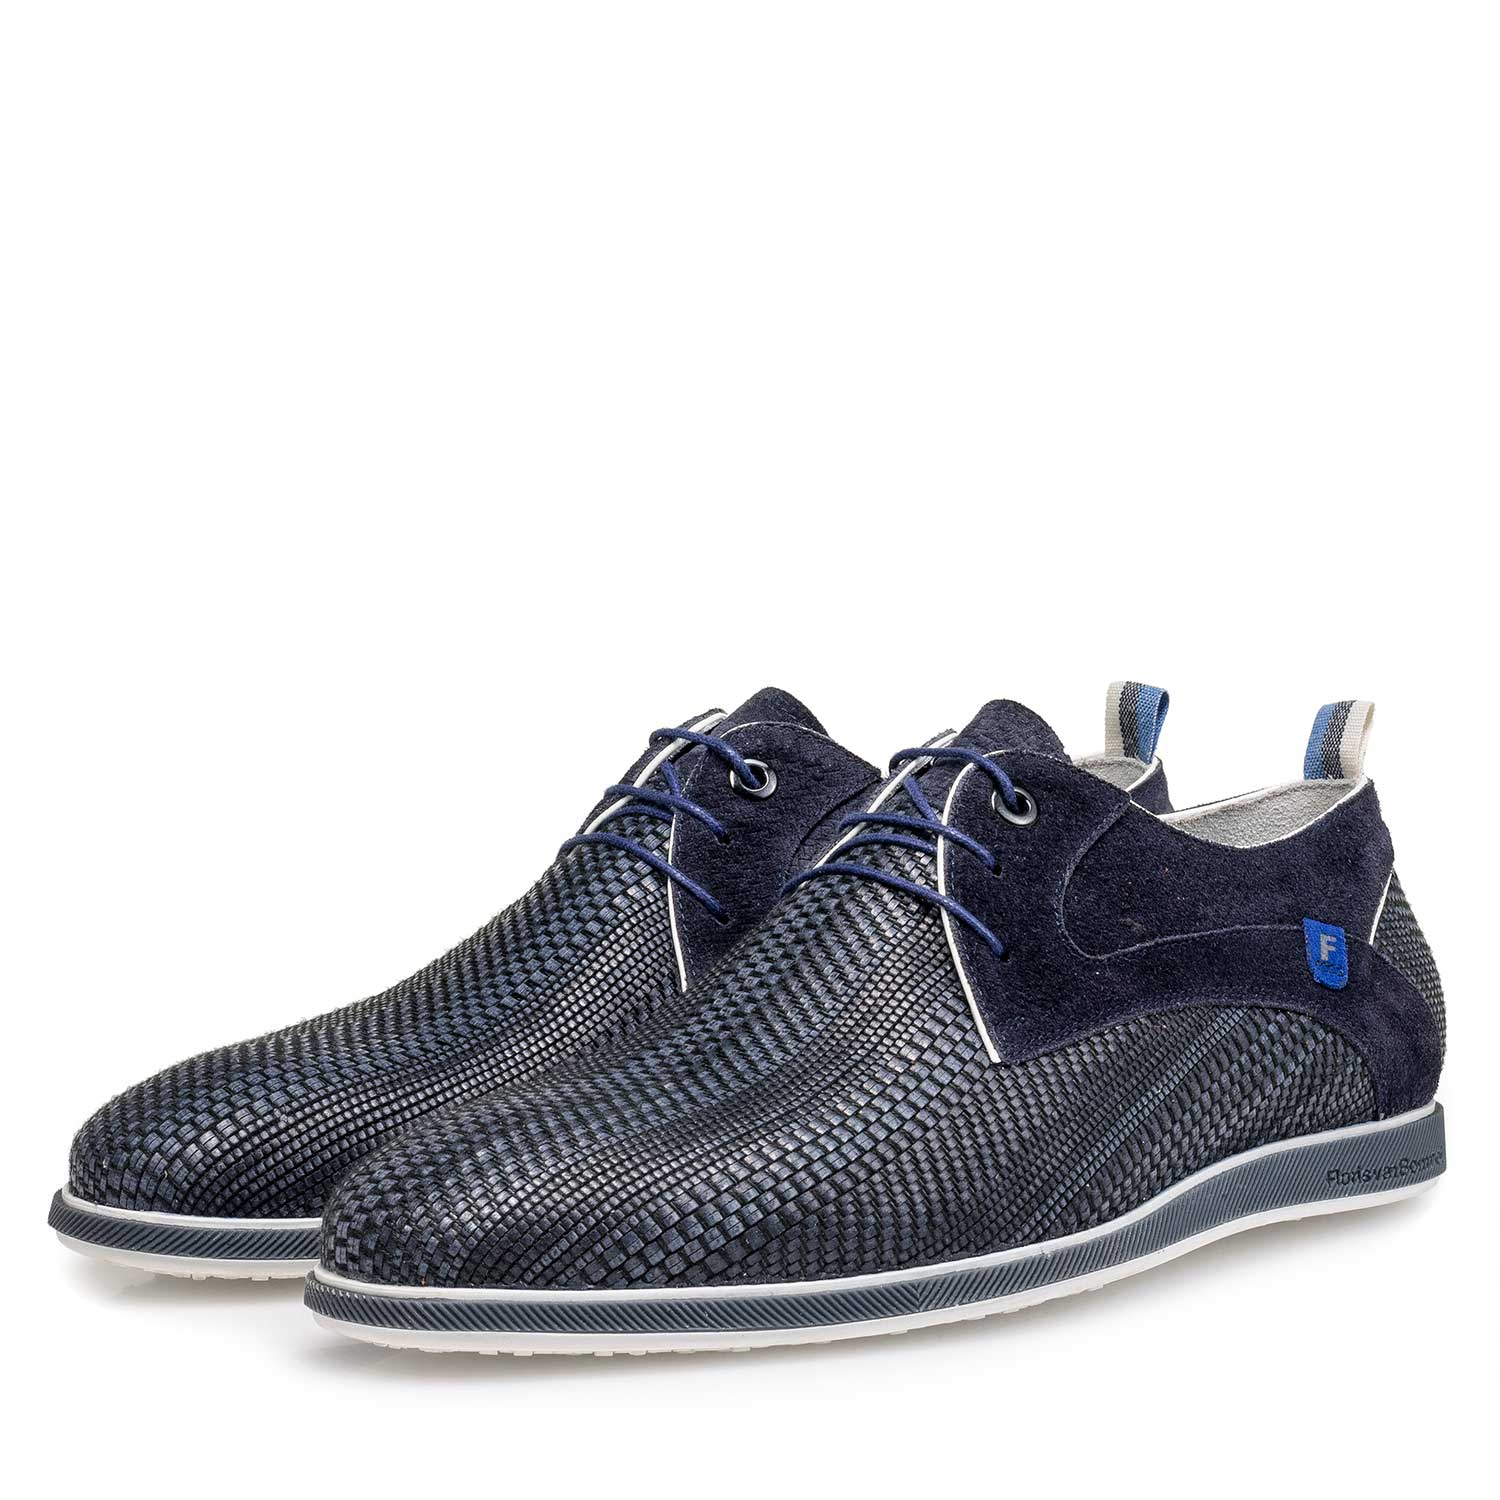 18201/04 - Blue braided leather lace shoe